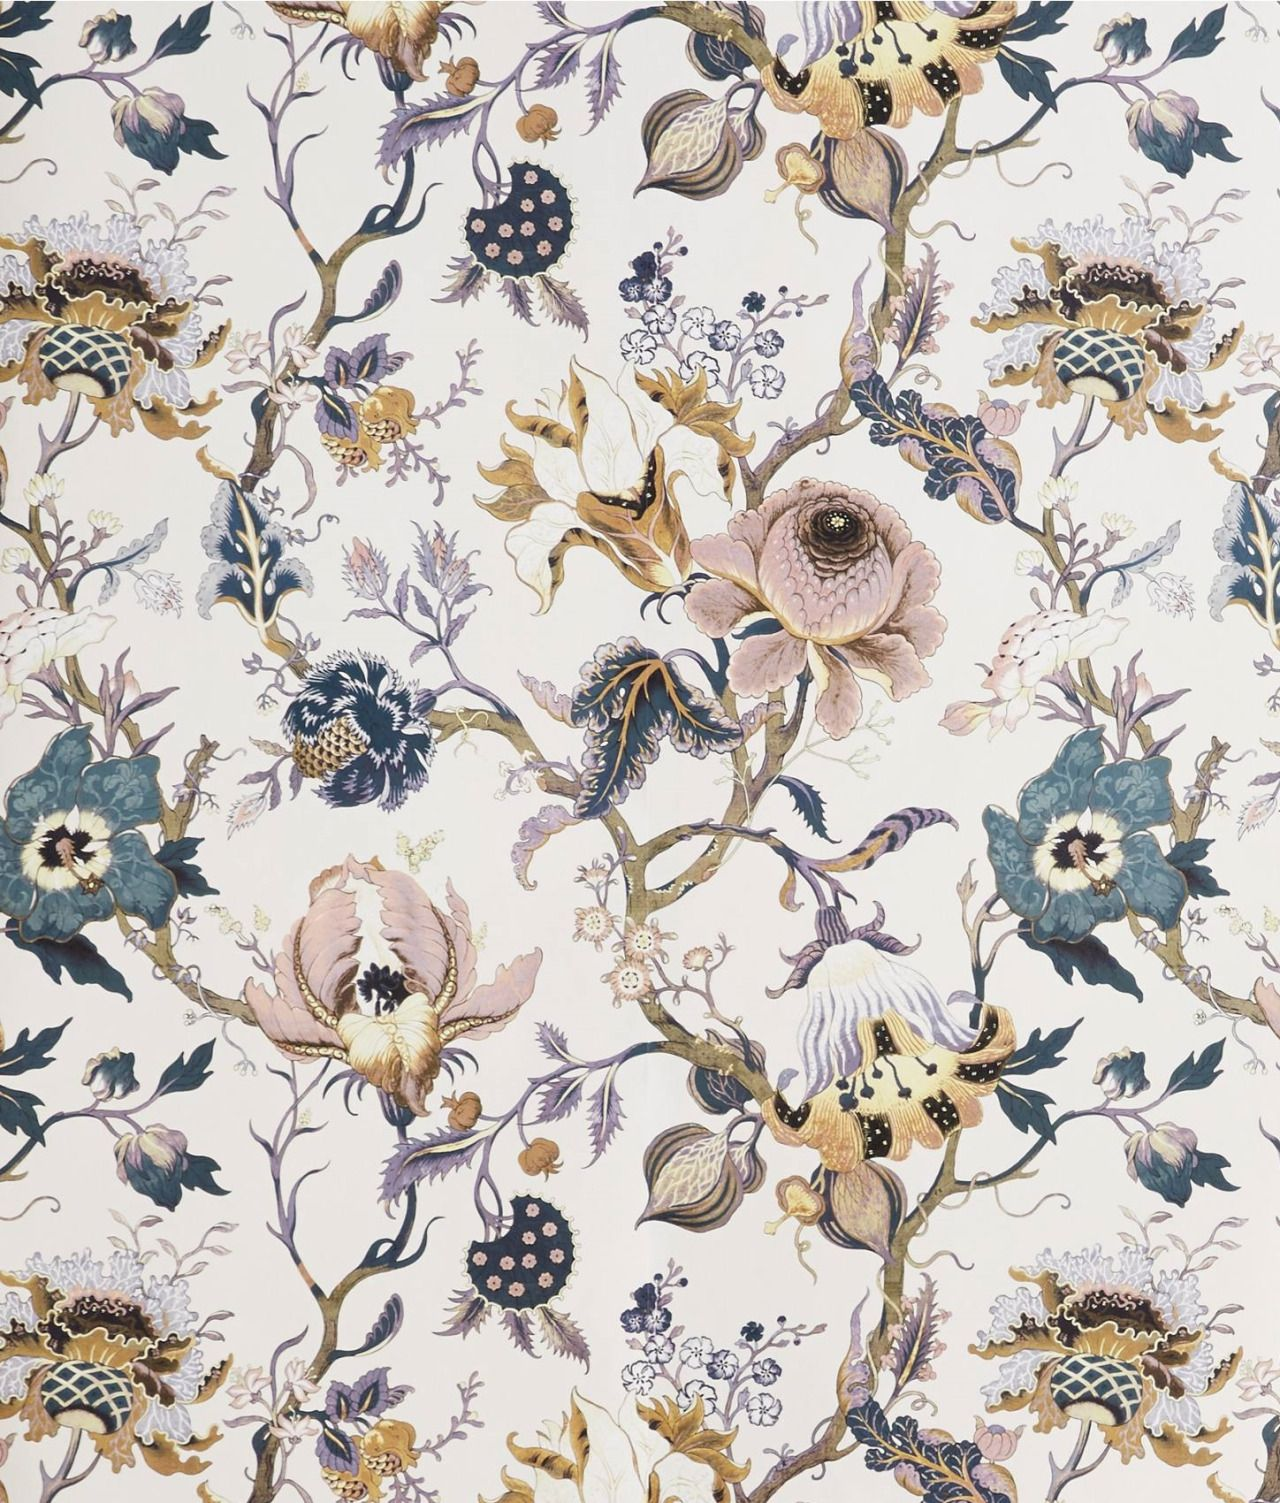 Artemis Interieur Visuallyoverwhelming Artemis Wallpaper Sold At